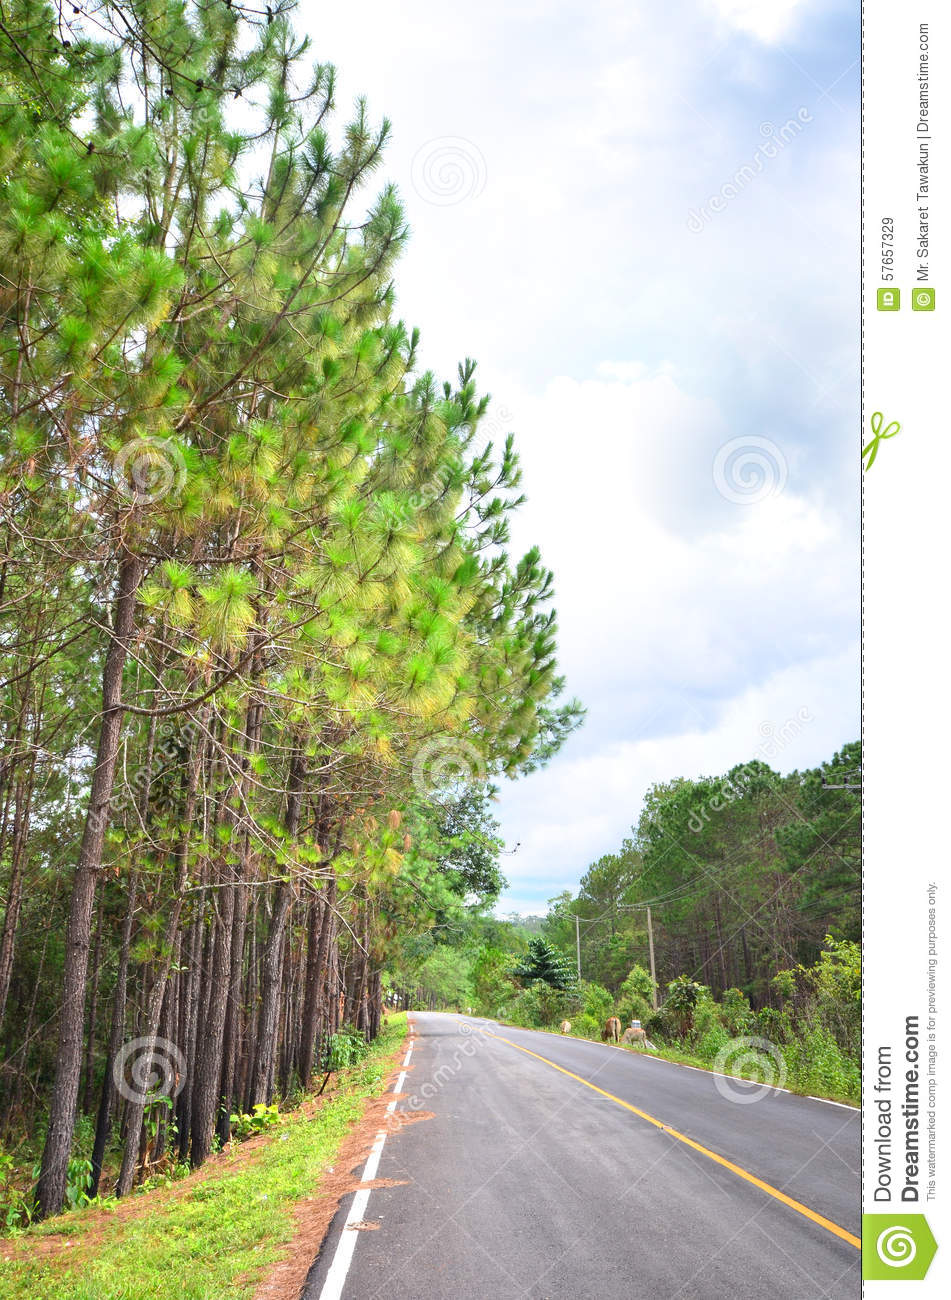 Pine trees with the road